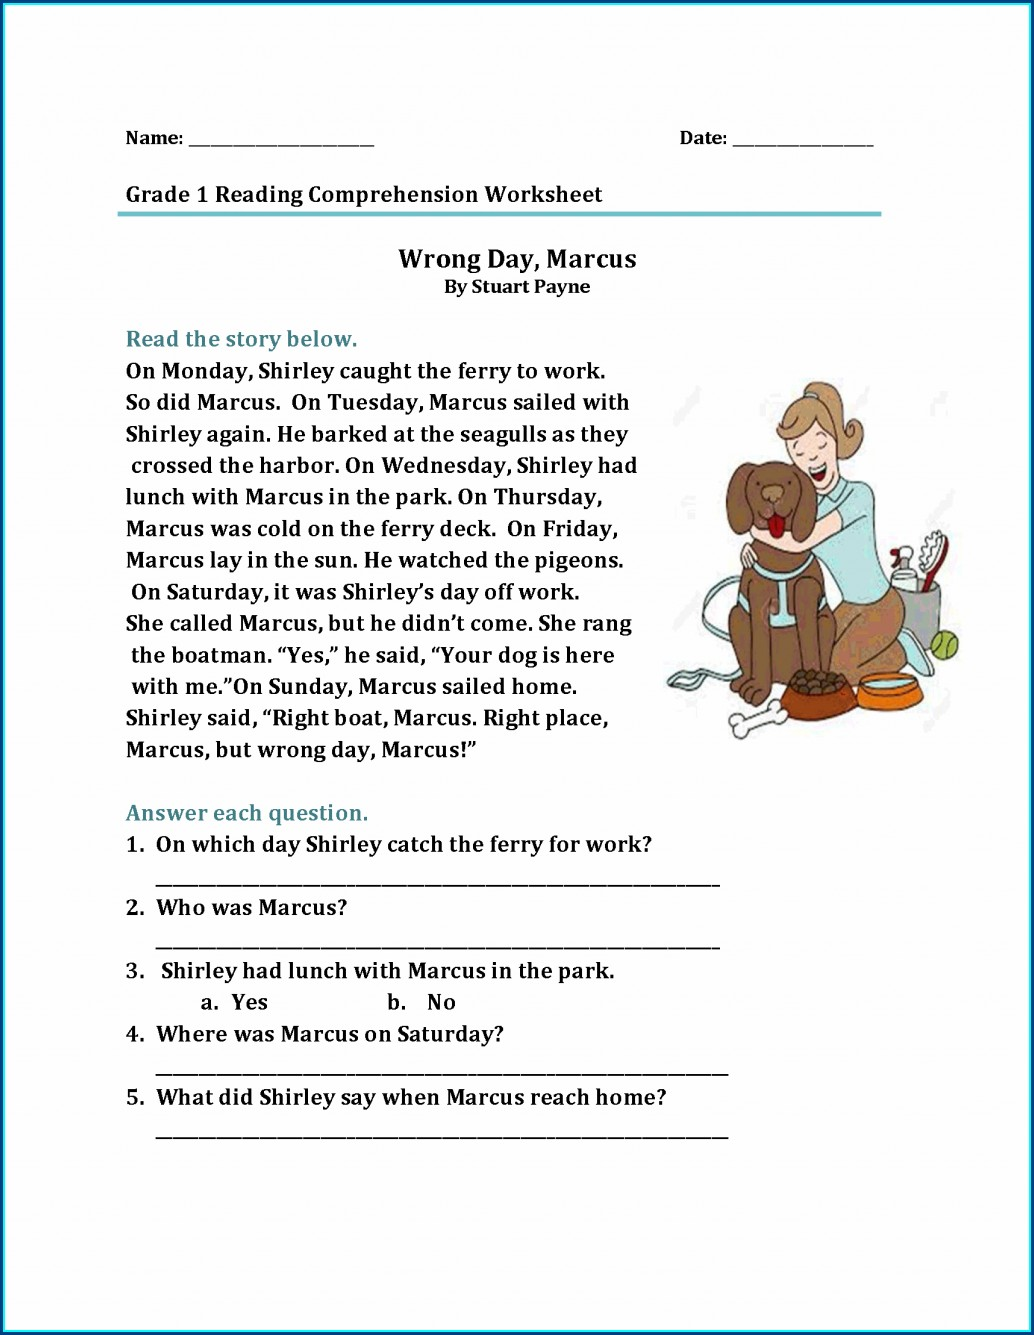 Reading Comprehension Worksheet For 1st Grade